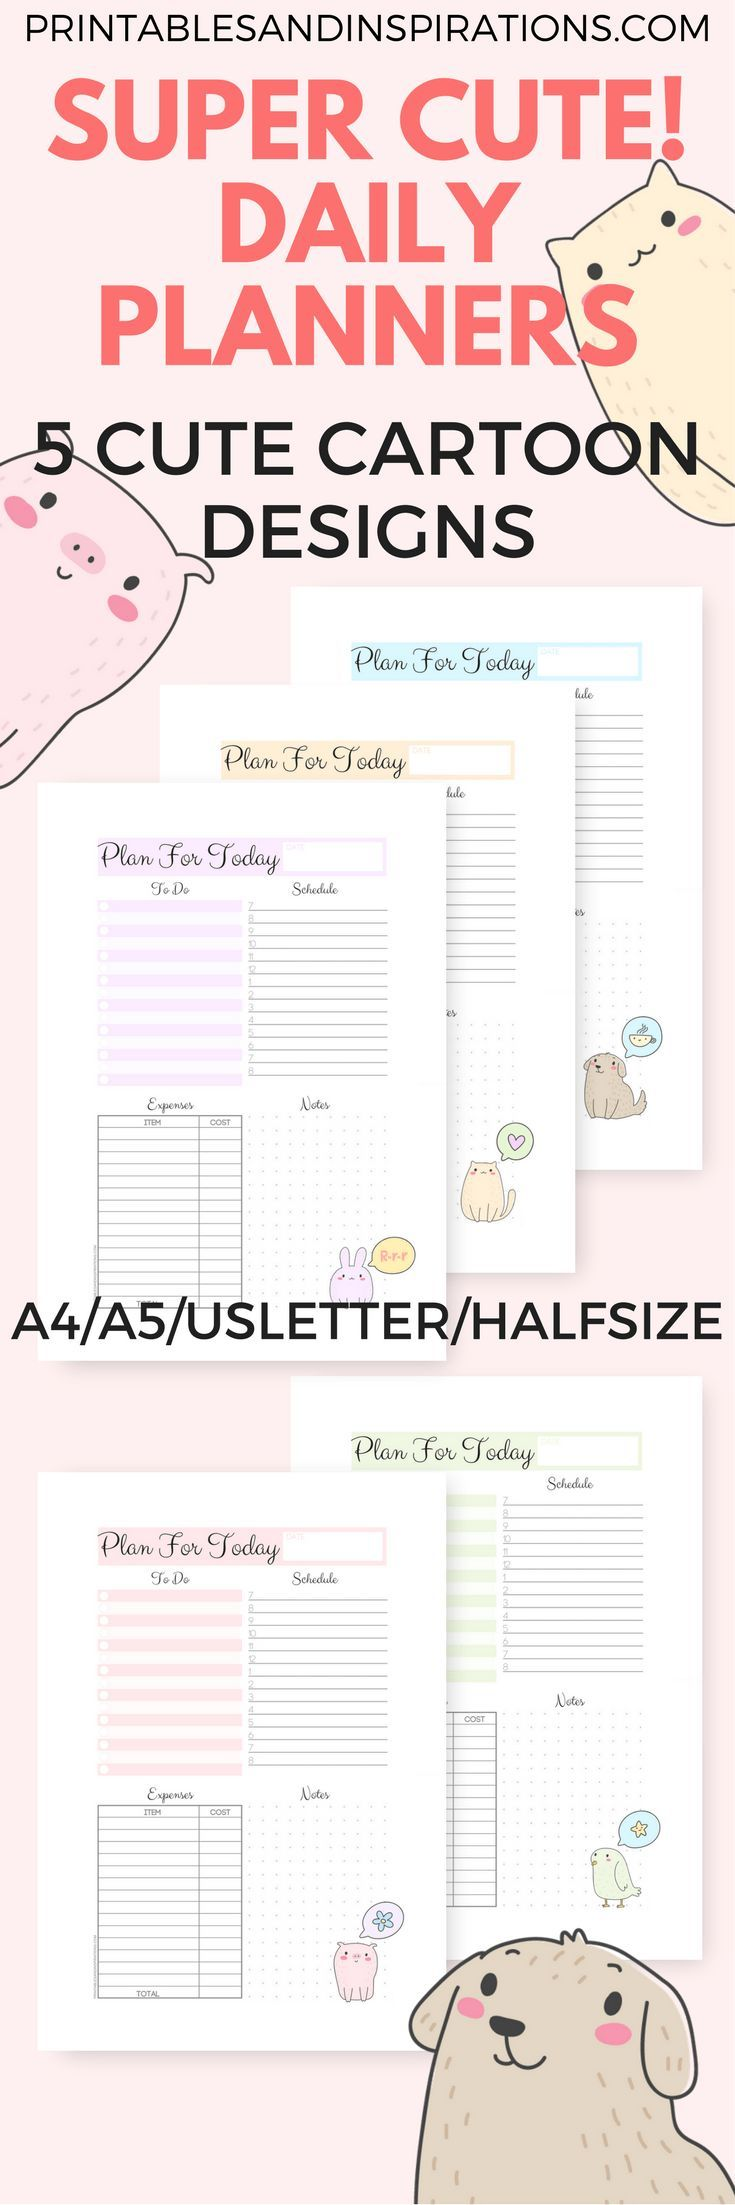 Free Printable Cute Daily Planners Daily Planner Printable For Ring Binder Half Size Daily Planner Cute Daily Planner Daily Planner Printable Daily Planner